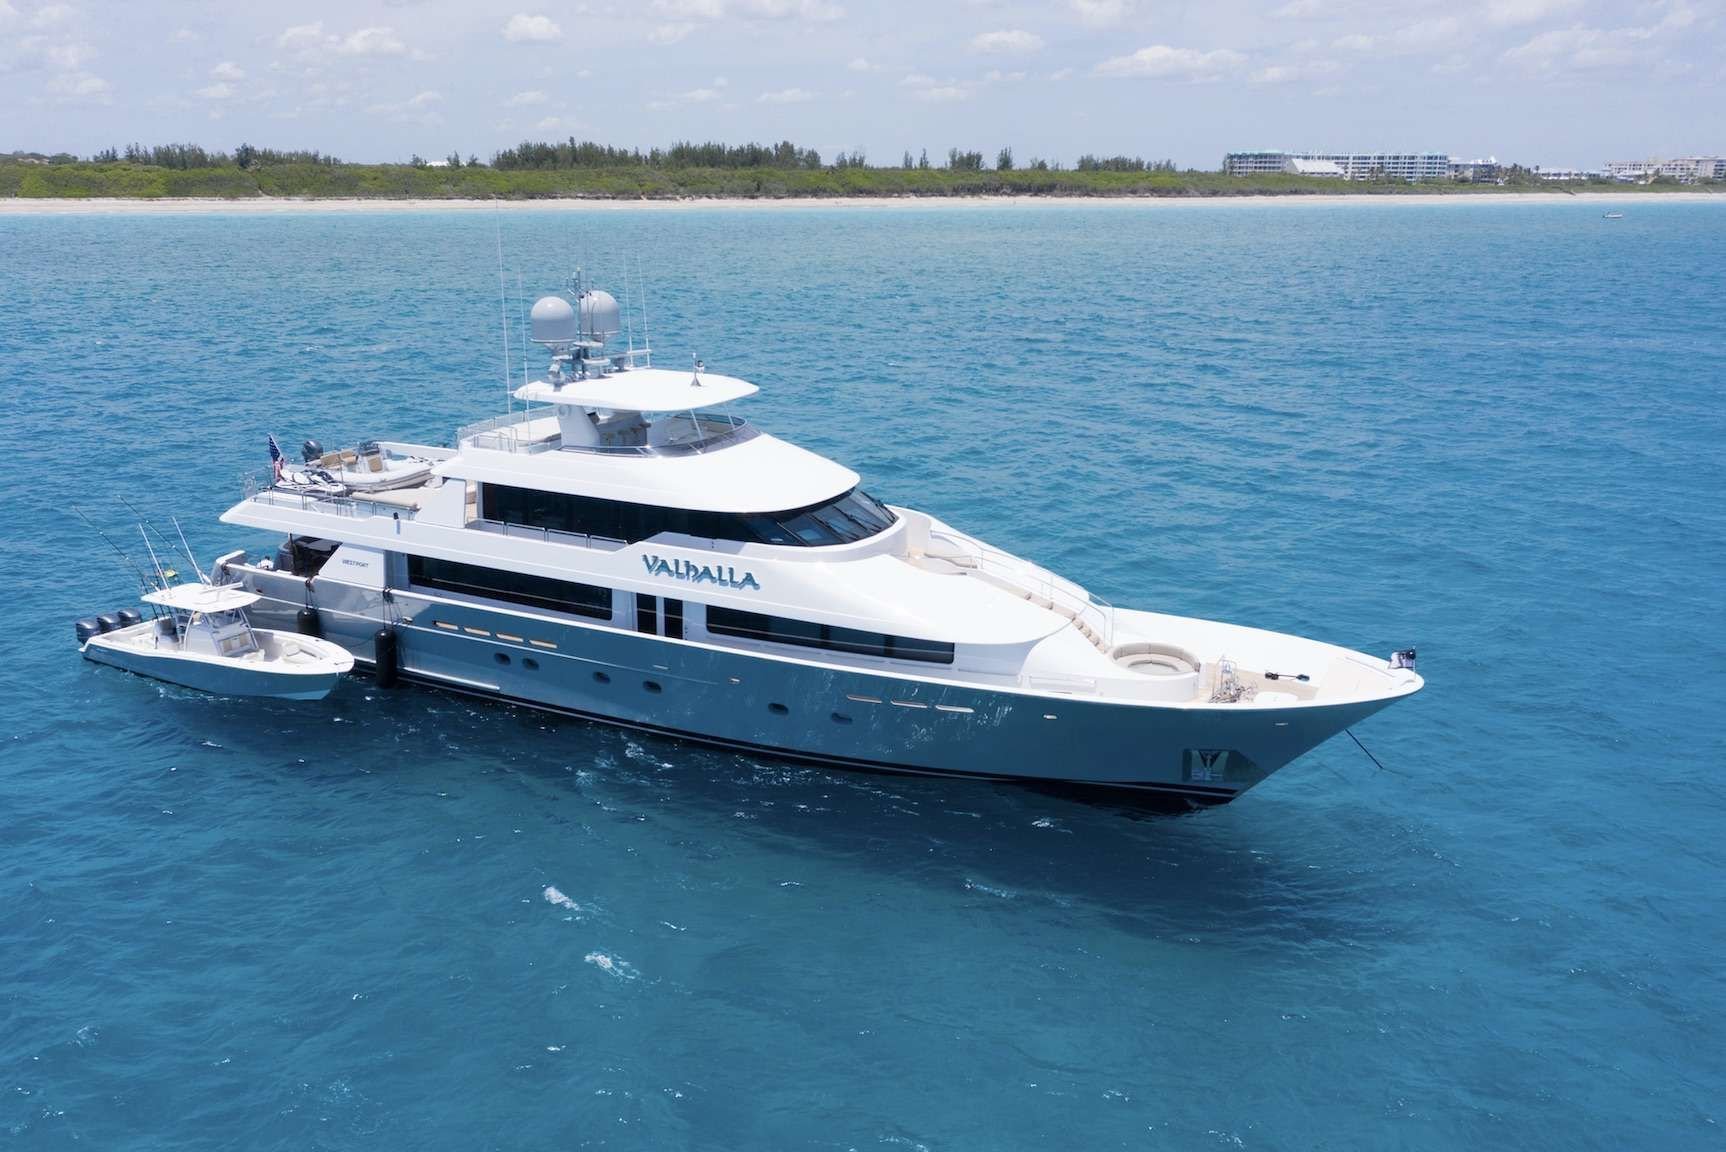 VALHALLA Yacht Charter - Ritzy Charters